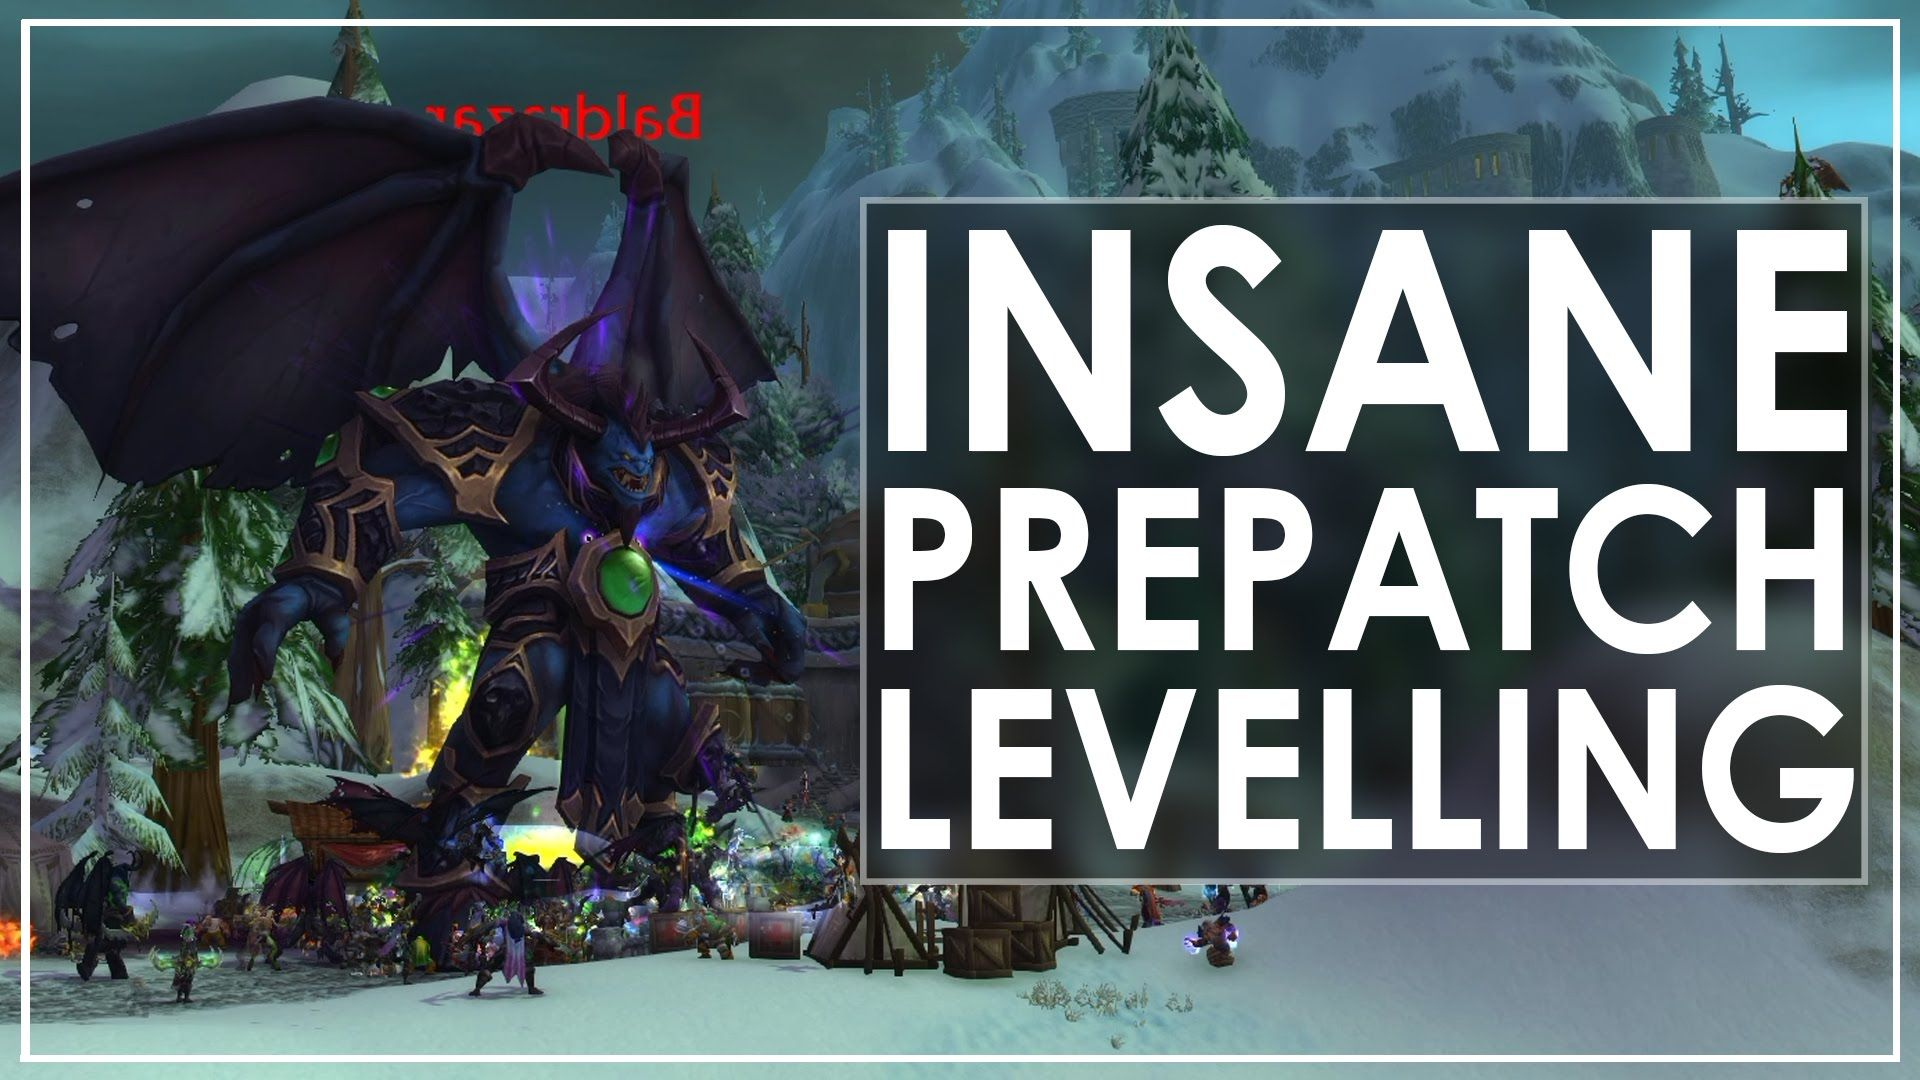 Pre-Patch Leveling Method - 10 levels in 15 mins. [video  text] #worldofwarcraft #blizzard #Hearthstone #wow #Warcraft #BlizzardCS #gaming